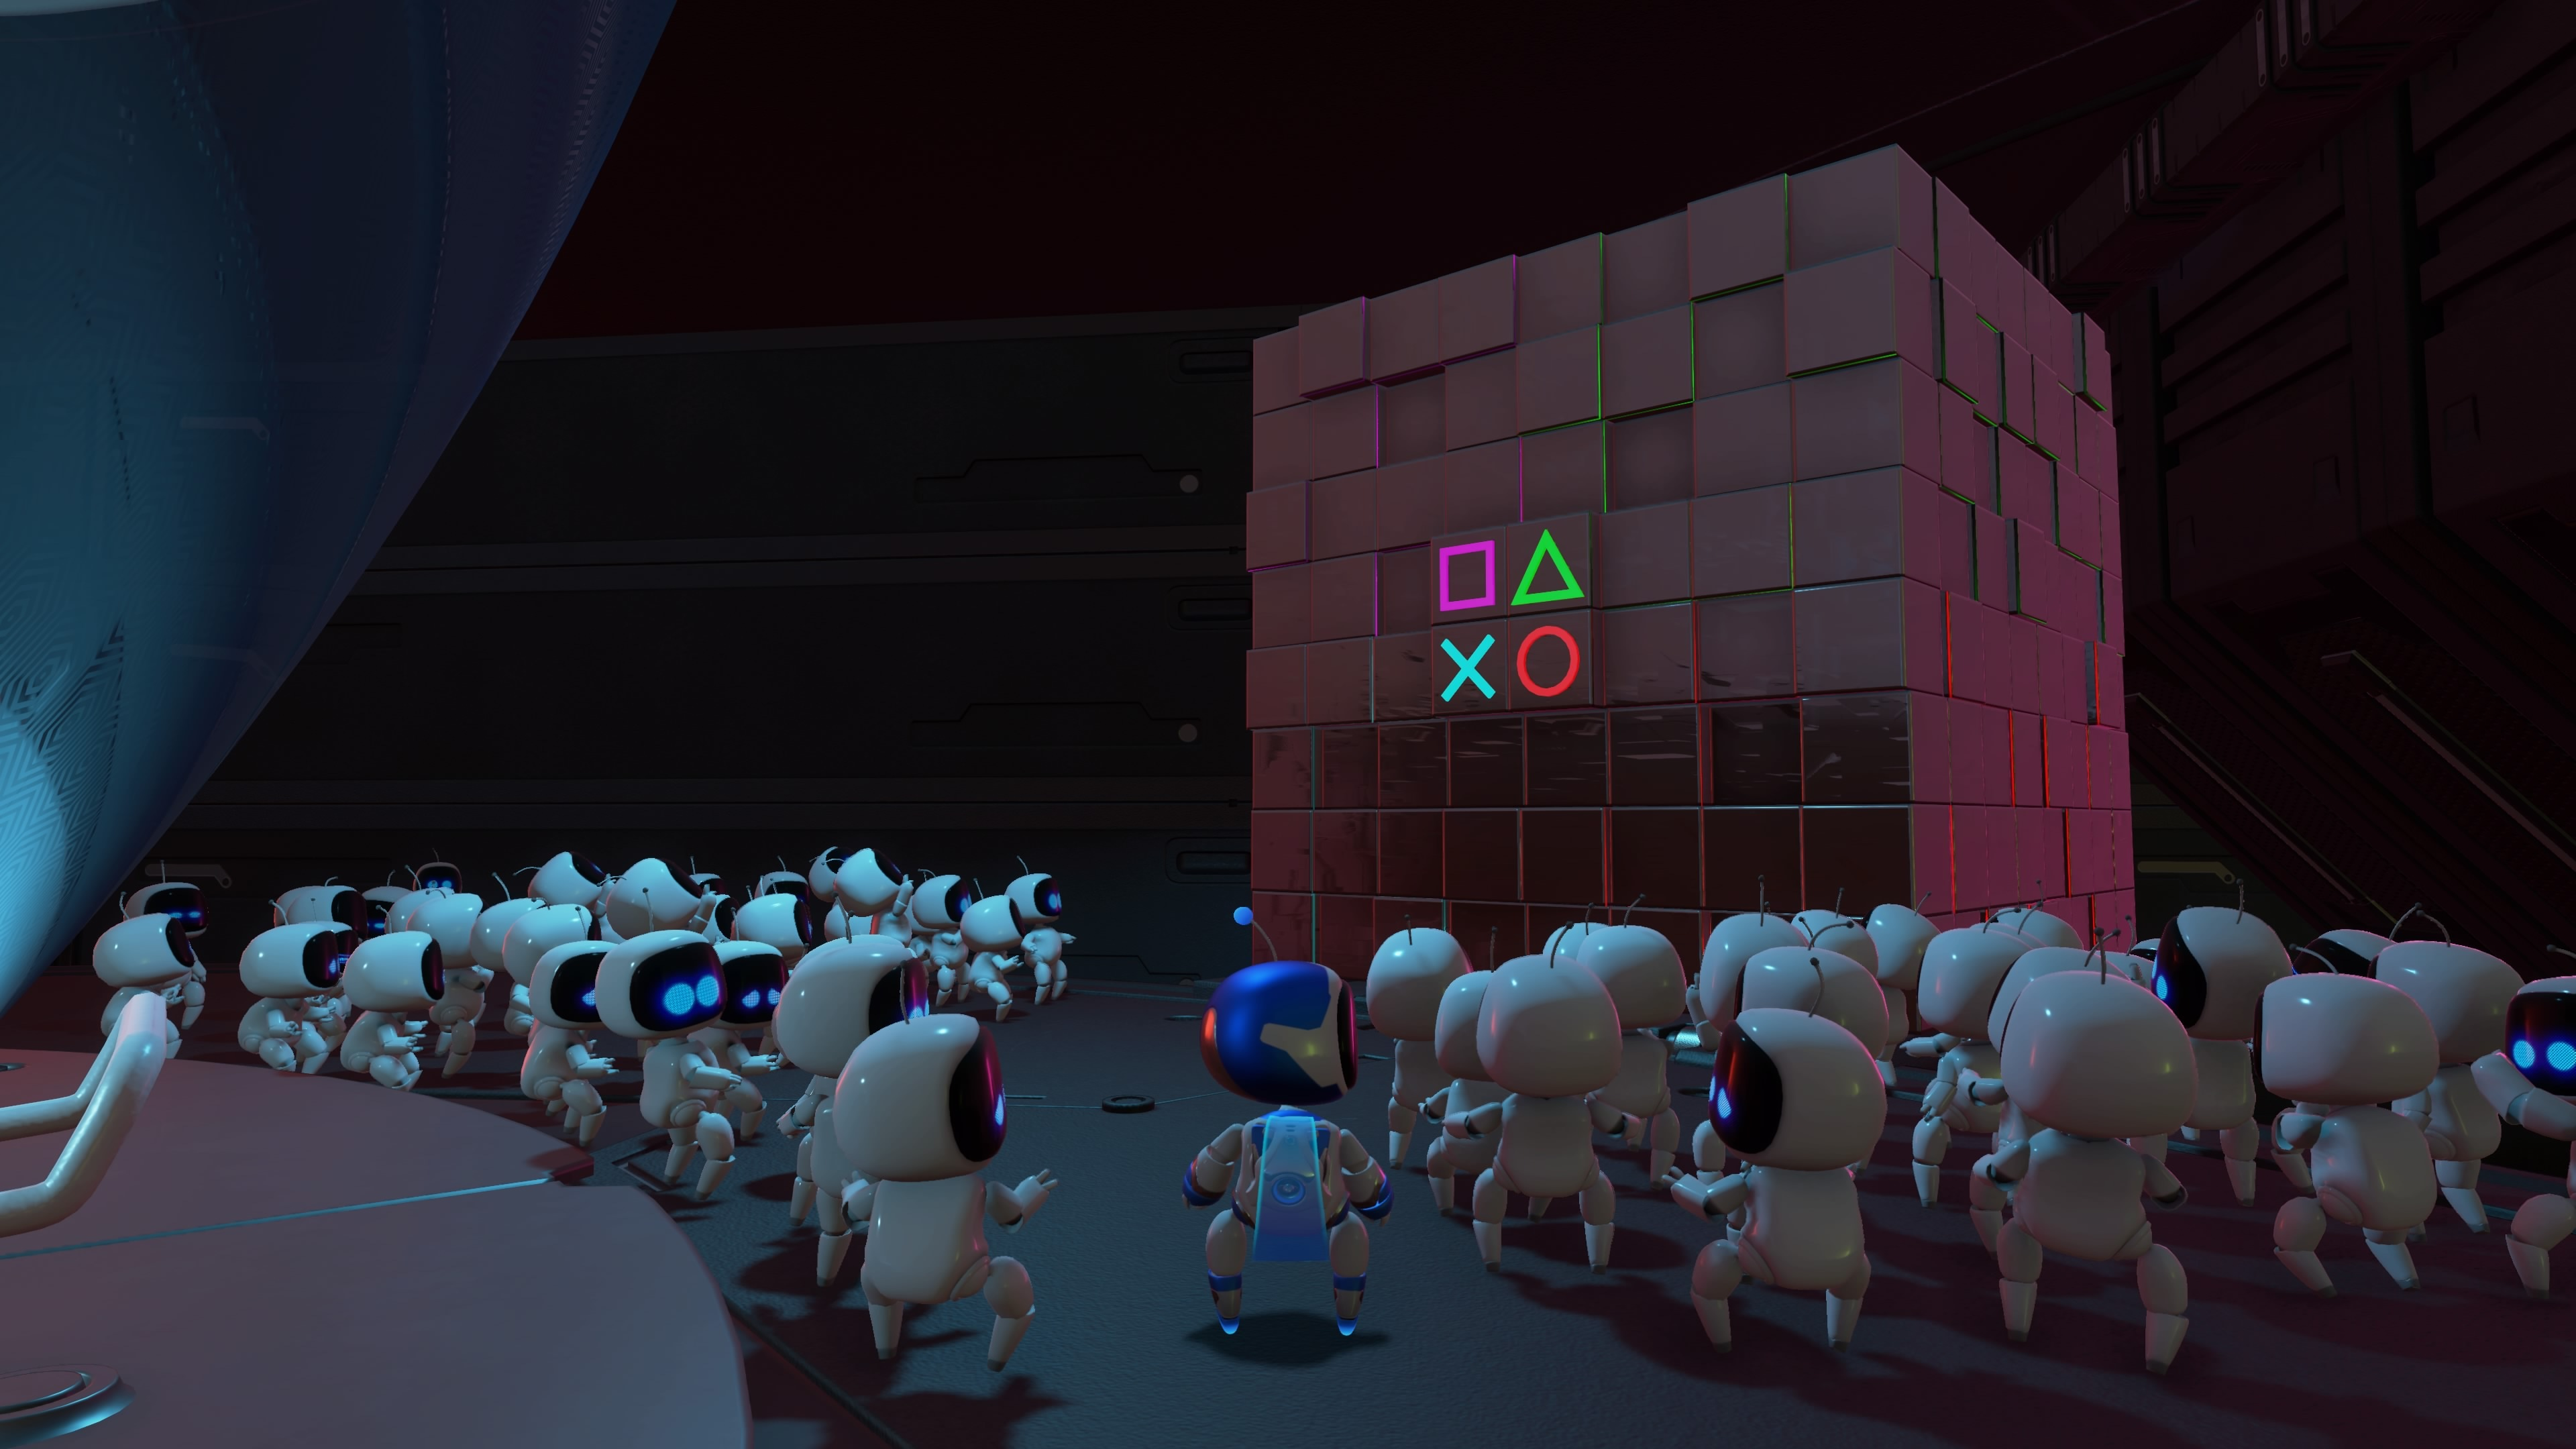 Astro Bots crowd around a PlayStation monument in Astro's Playroom